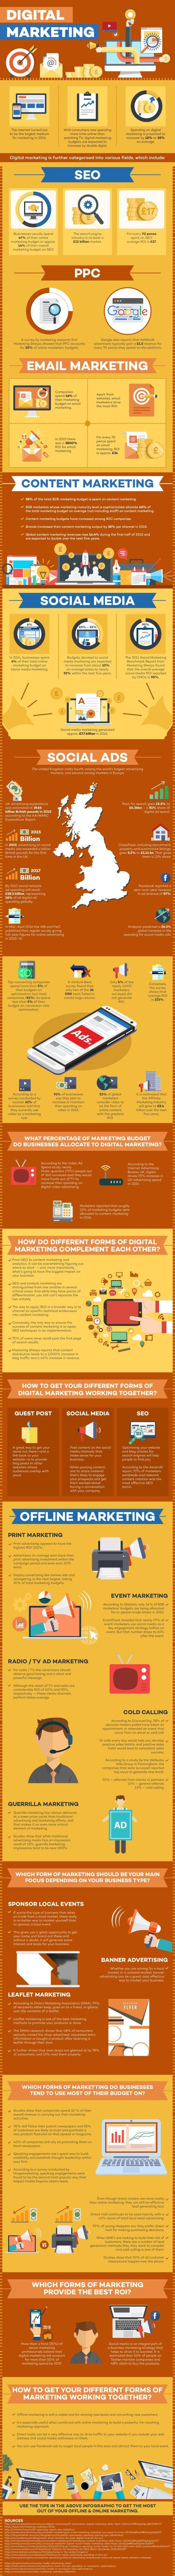 """Take a look at this online vs offline marketing-infographic for details on a variety of marketing channels, as well as the support statistics for each. FINALLY!  An Easy Way To Recruit People Into Your MLM Business Online - Rejection FREE - Without Wasting Your Time & Money Chasing Dead Beat Prospects & Leads…"""""""